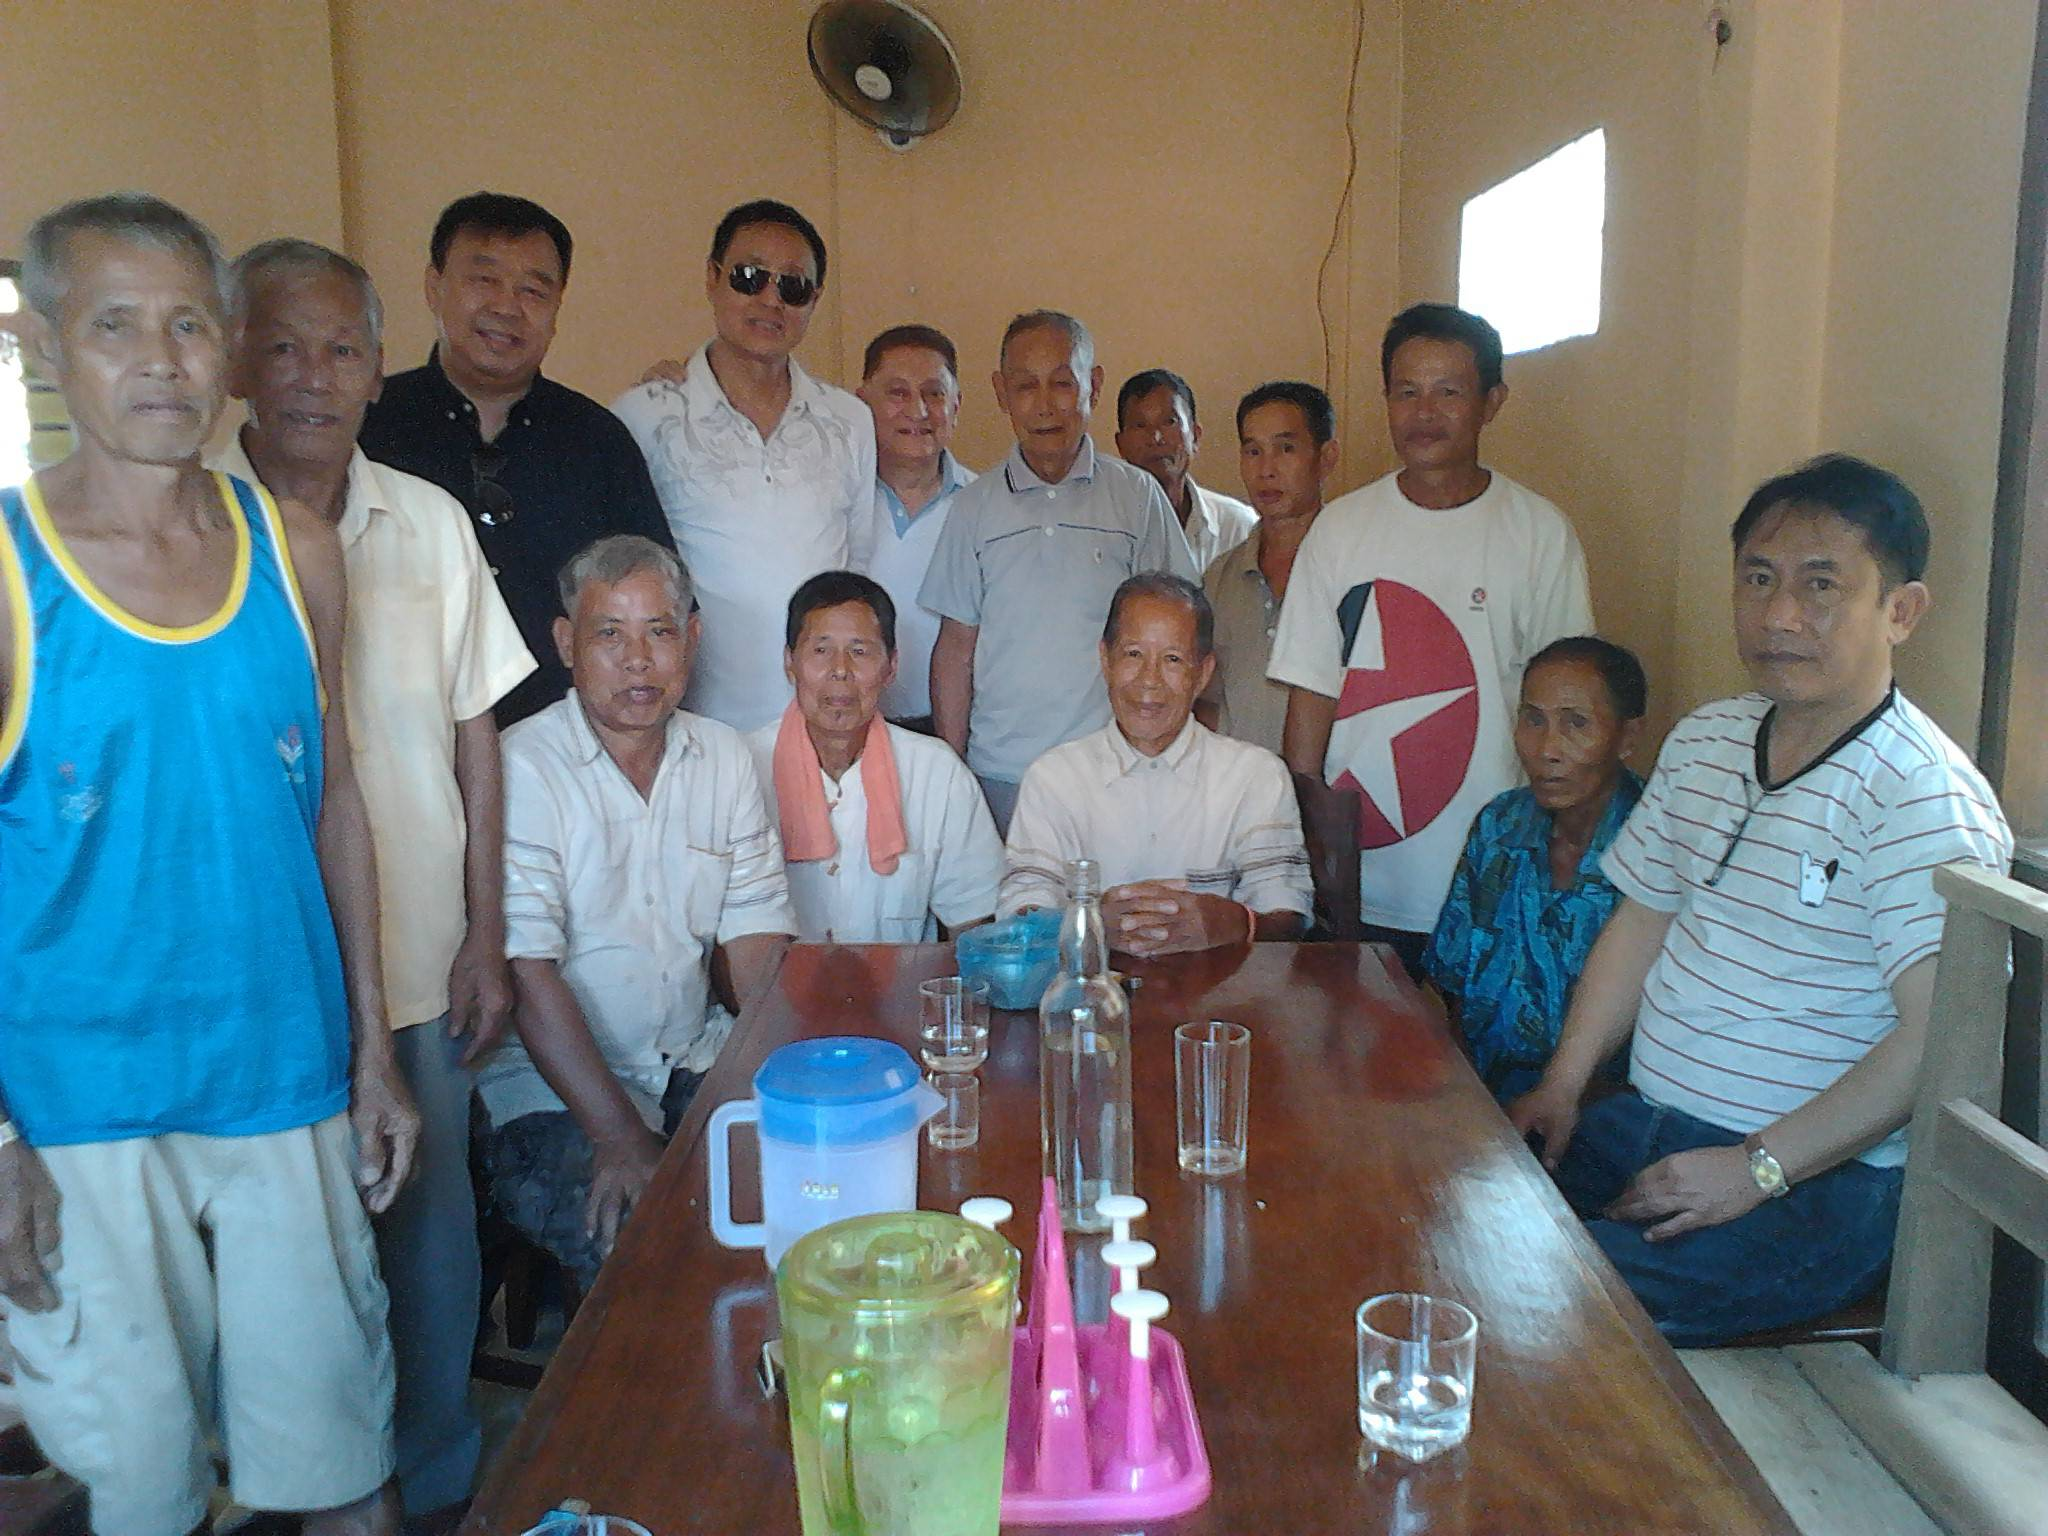 With group of farmers in Laos. RL (center back) and Mr. Virasane (extreme right) head of Legacy partner Foundation in Laos.  Photo credit: Rafael Legaria.